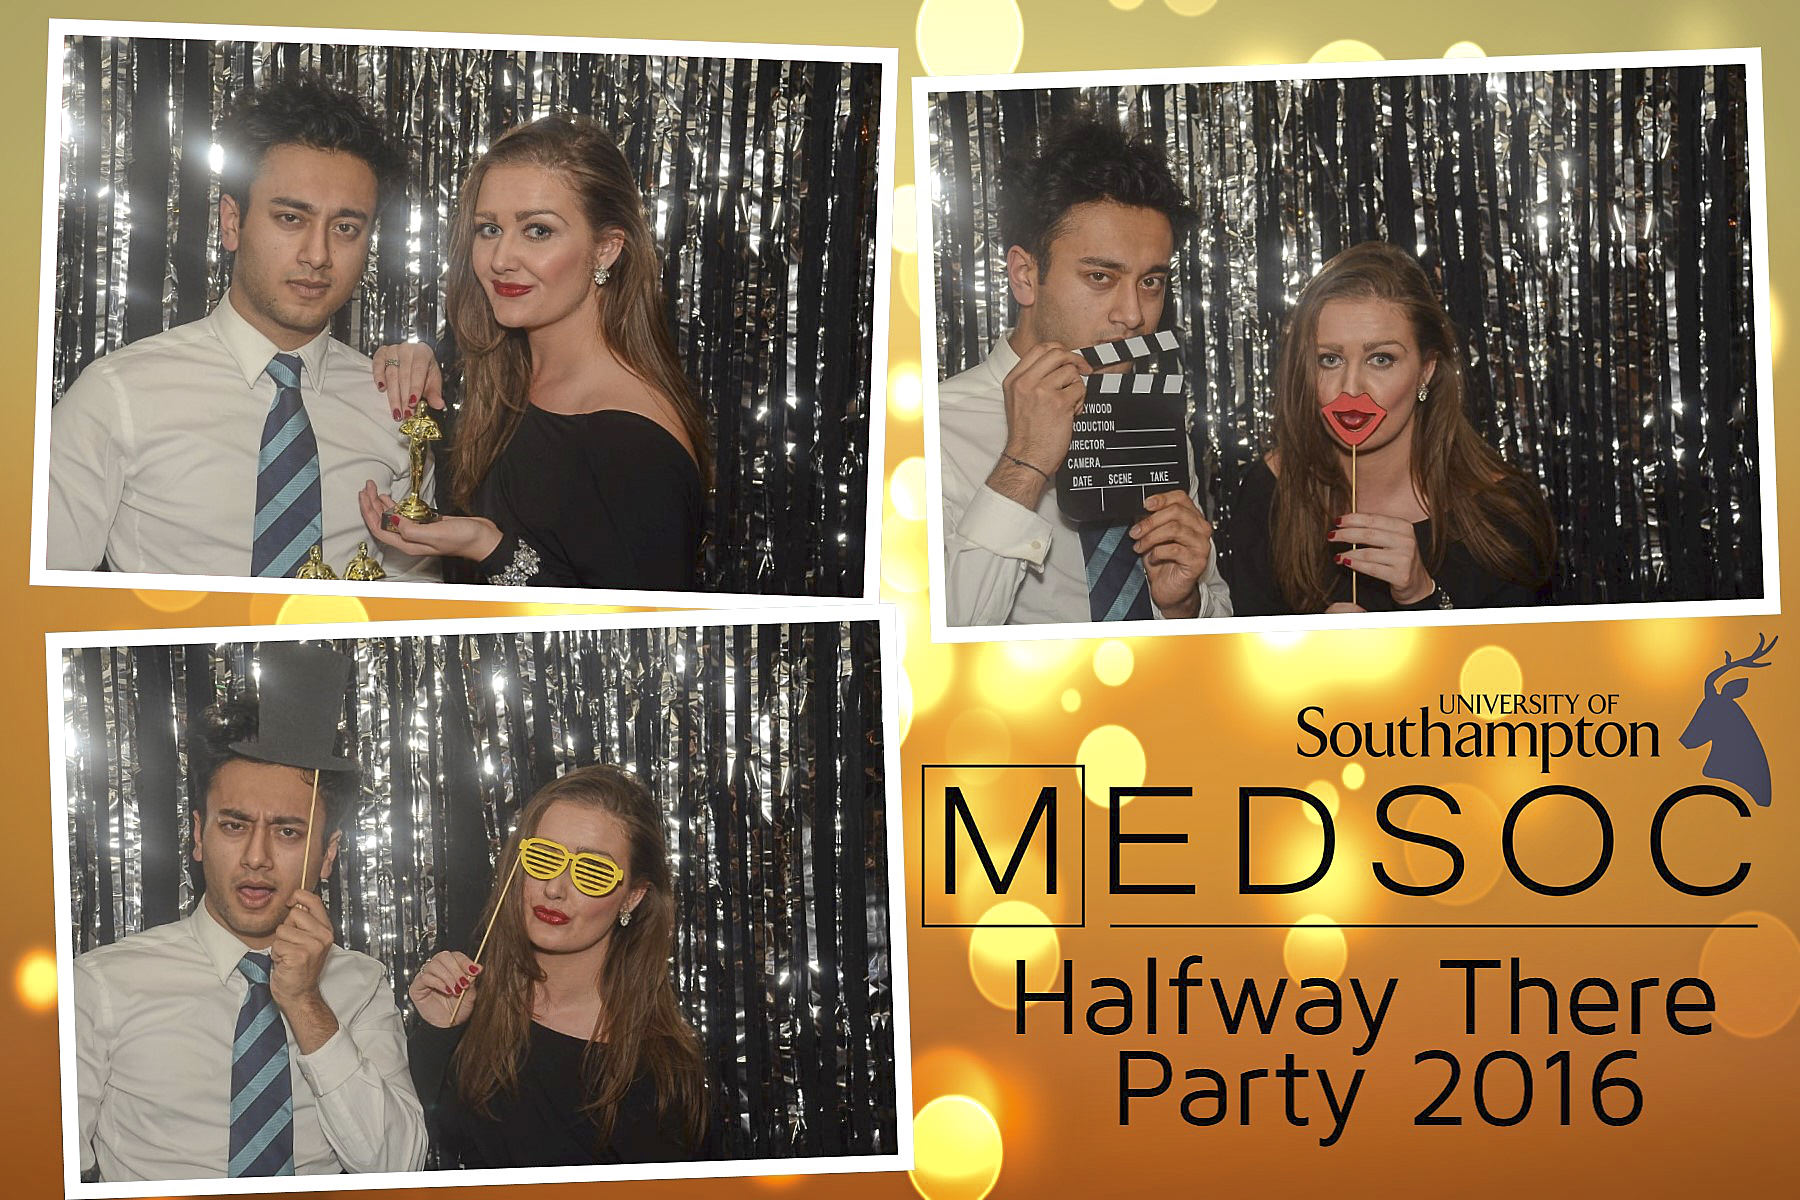 MedSoc Halfway There Party 2016 DS001036.jpg